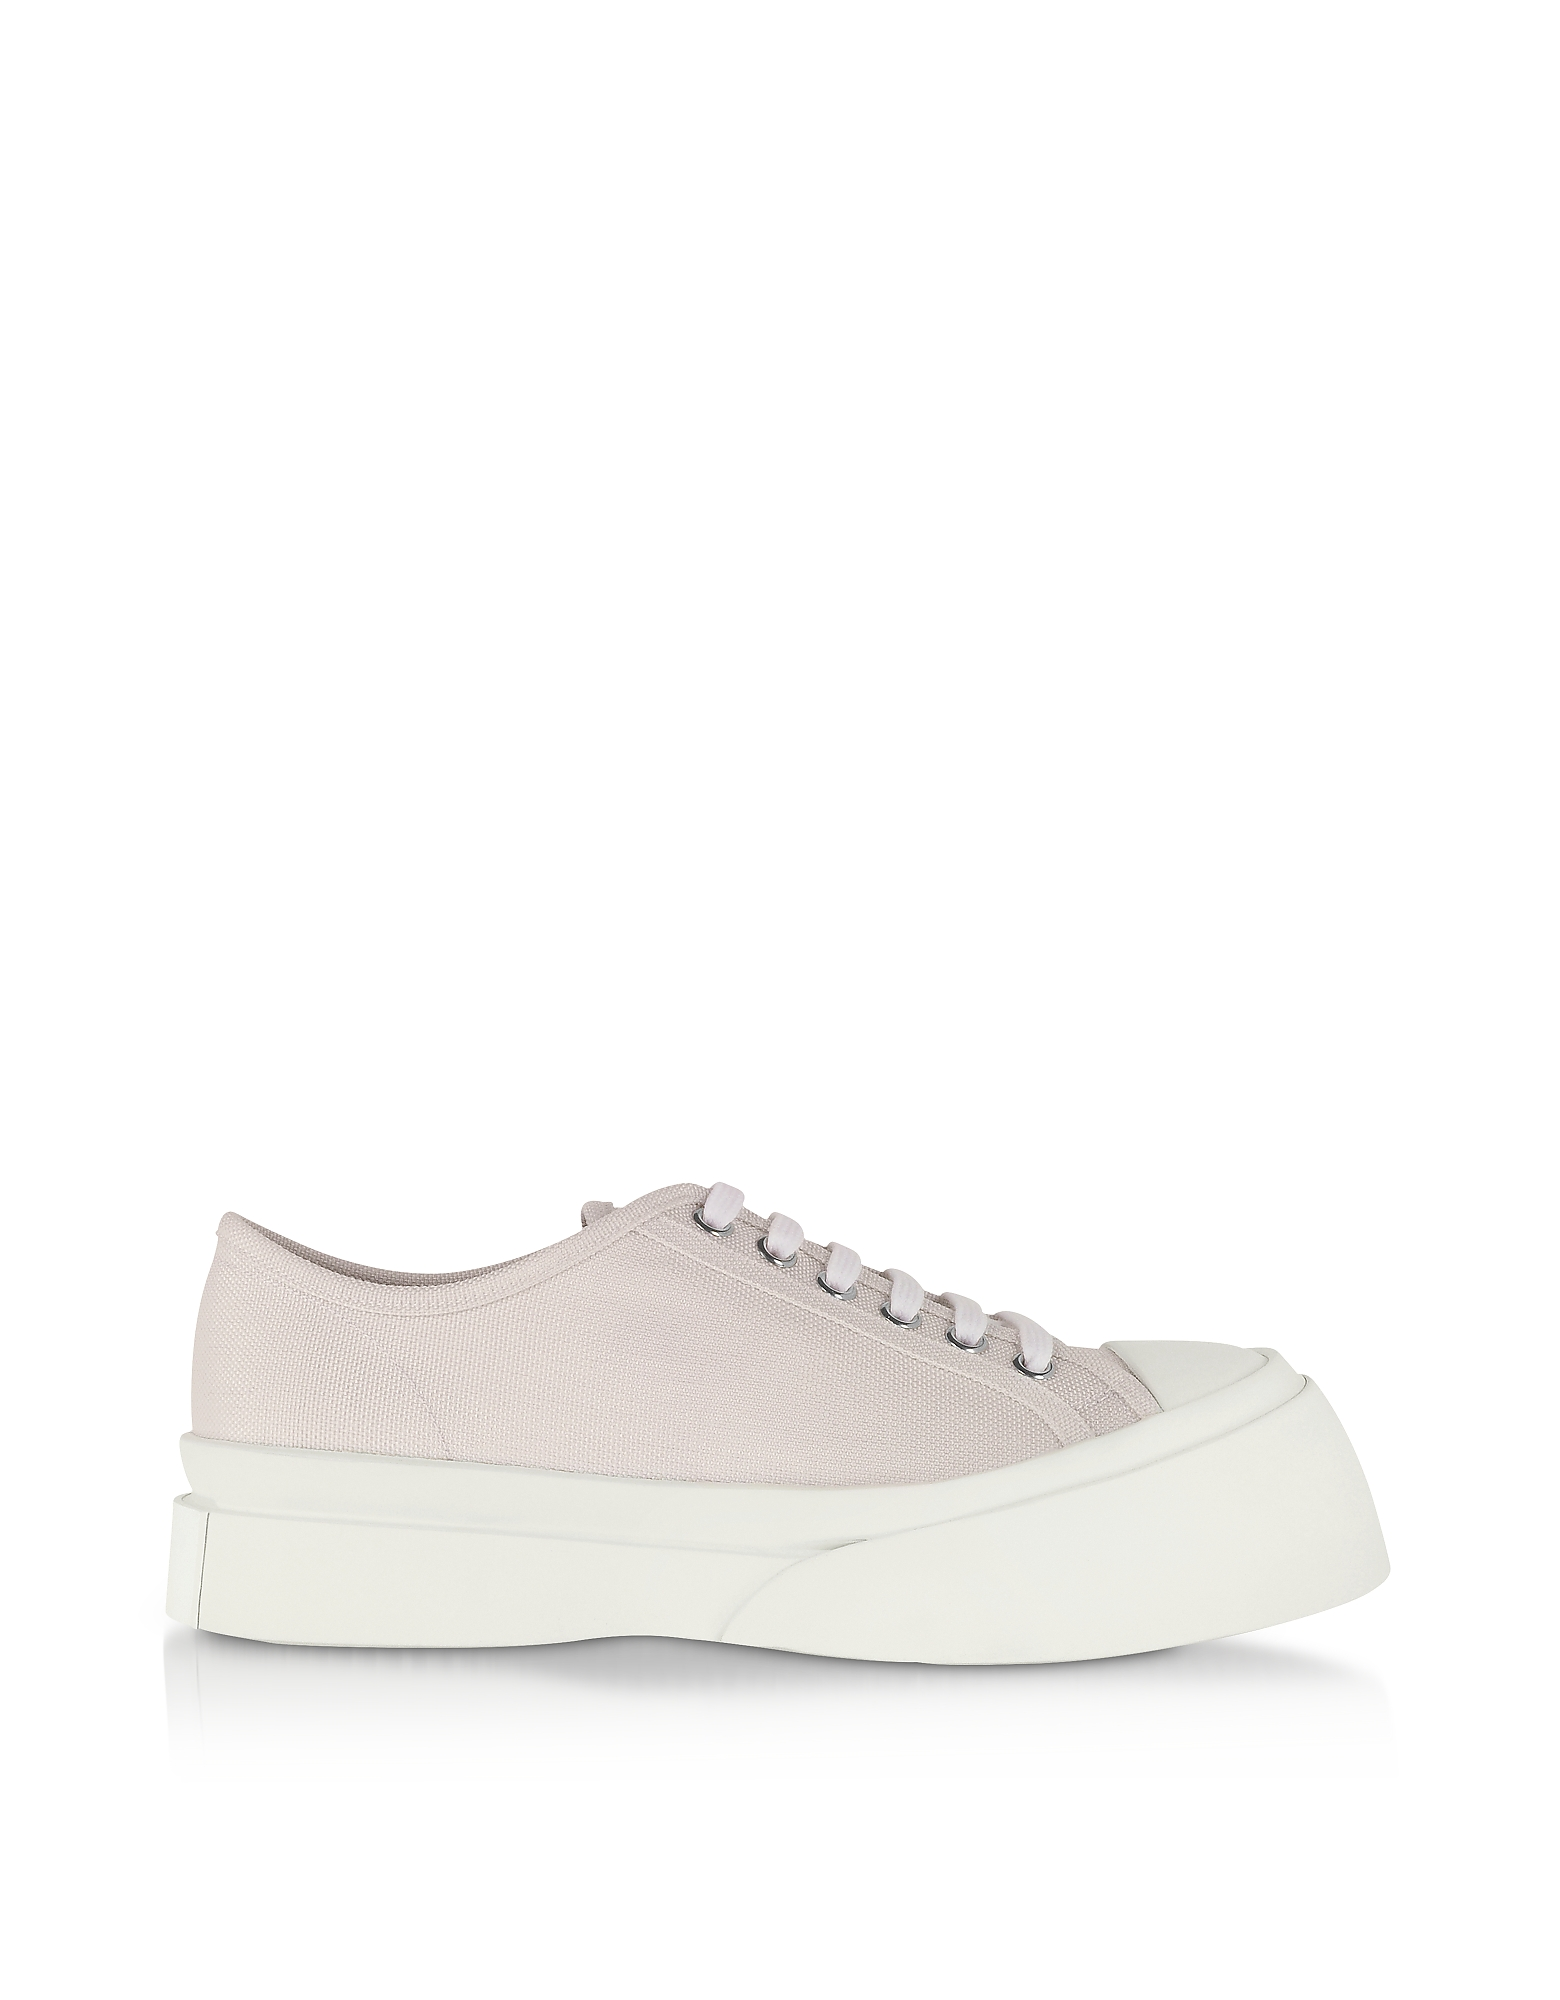 Lily White Canvas Sneakers